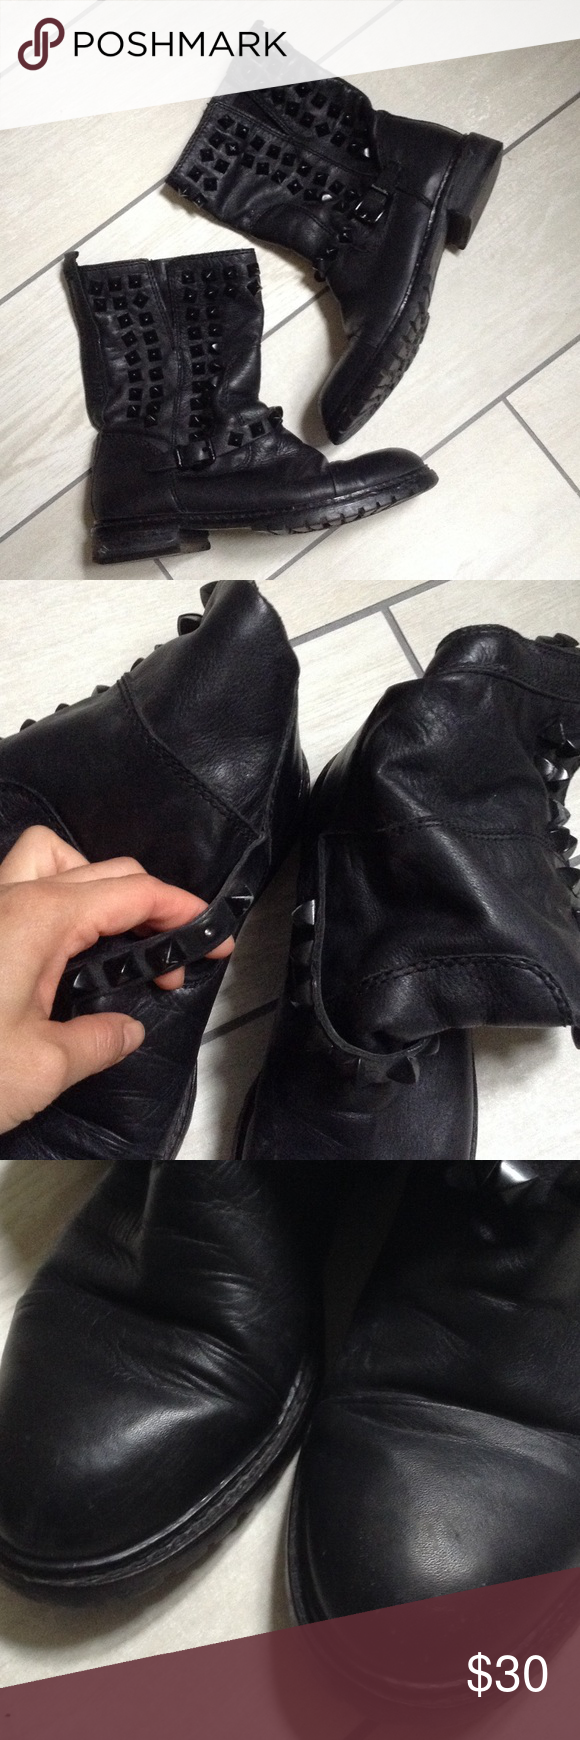 Zara Studded Leather Moto Boots Well loved in good fair condition. Size 6. Paid over $100. Scuffing all around and missing one stud but cannot tell because it's on the inside. Please see pics! Super comfy! Needs a new home! Pet and smoke free home! Zara Shoes Ankle Boots & Booties